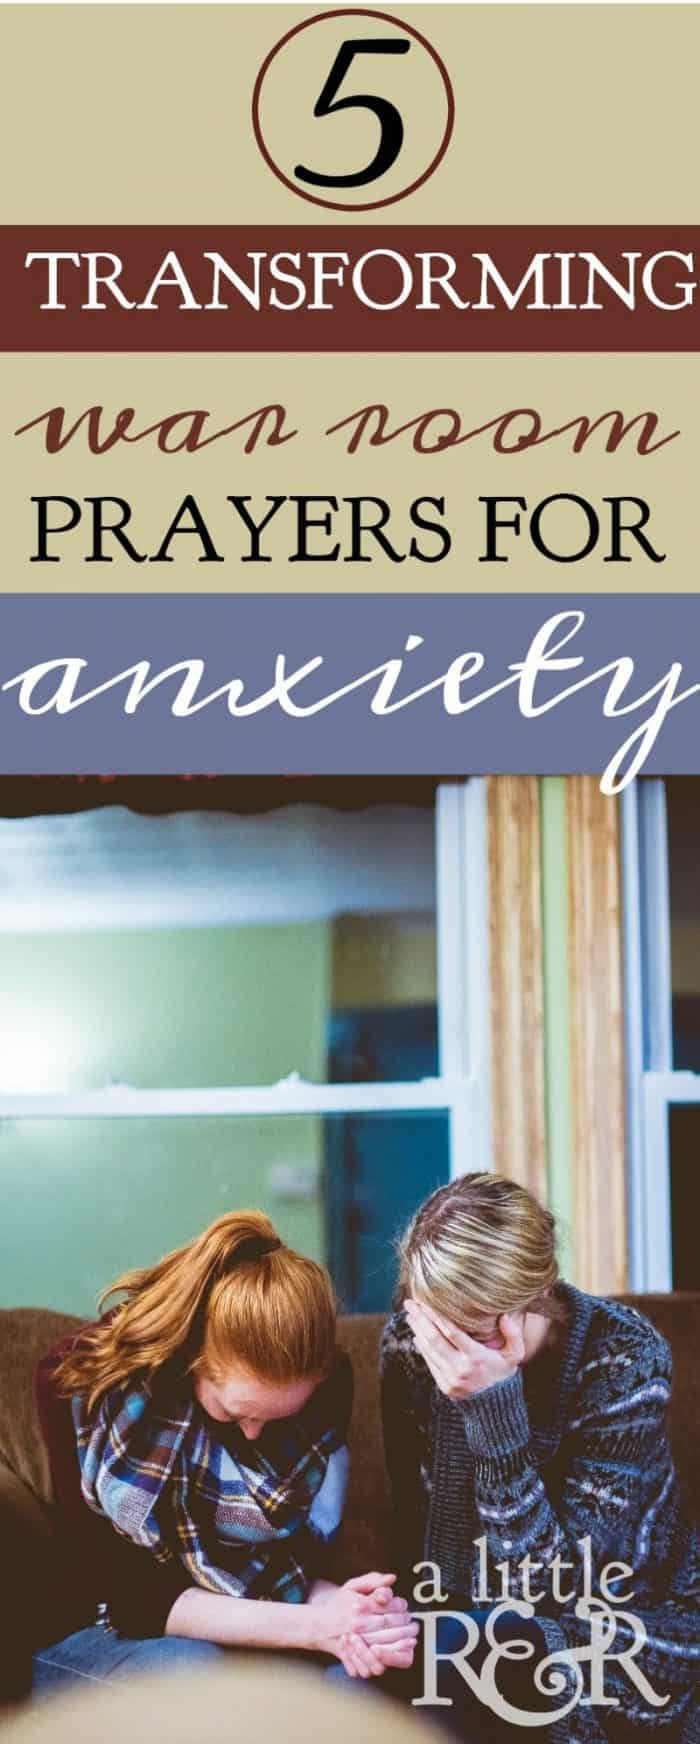 If you're battling anxiety, depression, and stress, the Bible is full of verses that boost our faith and trust in the Lord. Here are 5 transforming war room prayers that will help you win the victory over anxiety! #alittlerandr #anxiety #stress #prayer #Bibleverses #warroom